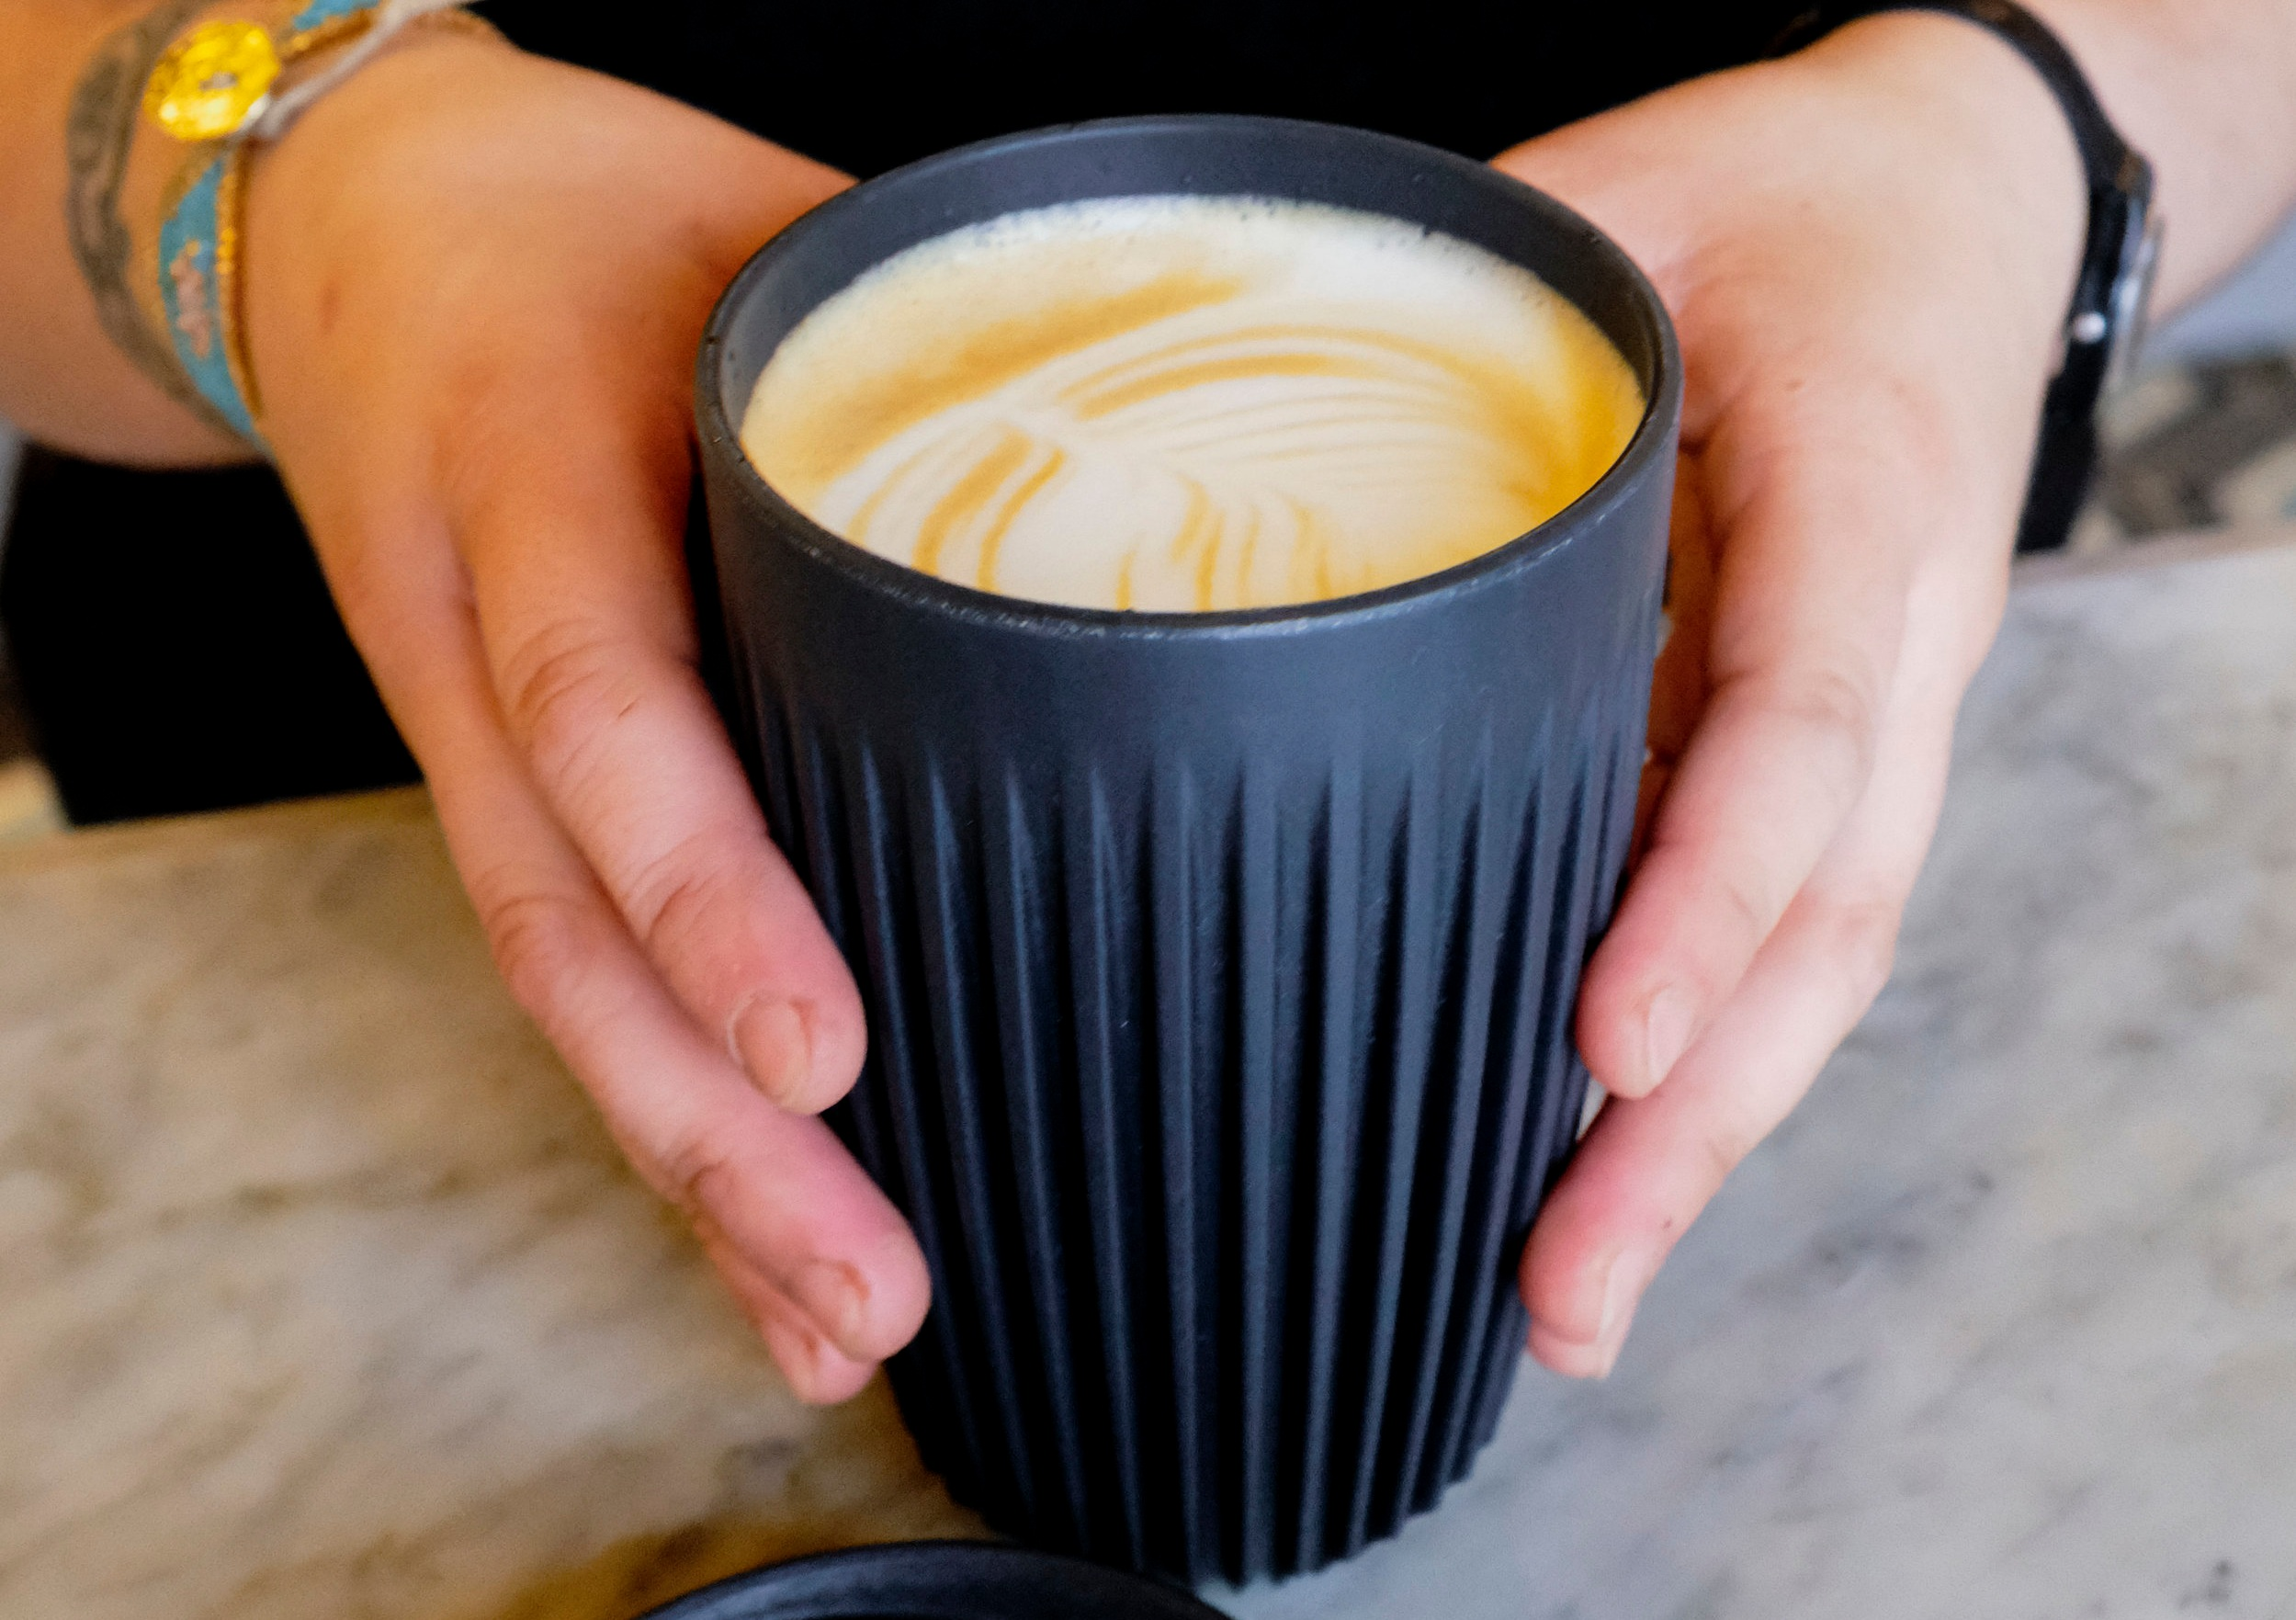 """- """"Our goal is to make it as easy as possible for our customers to consume less. The key was finding a cup that everyone will want to use regularly. The Huskee Cups have a great design, easy to clean and to drink from. Plus, they are made out of an organic byproduct of the coffee milling process, and so are extra eco-friendly."""" Taylor Bloom, Think Coffee Barista, 8th Avenue"""